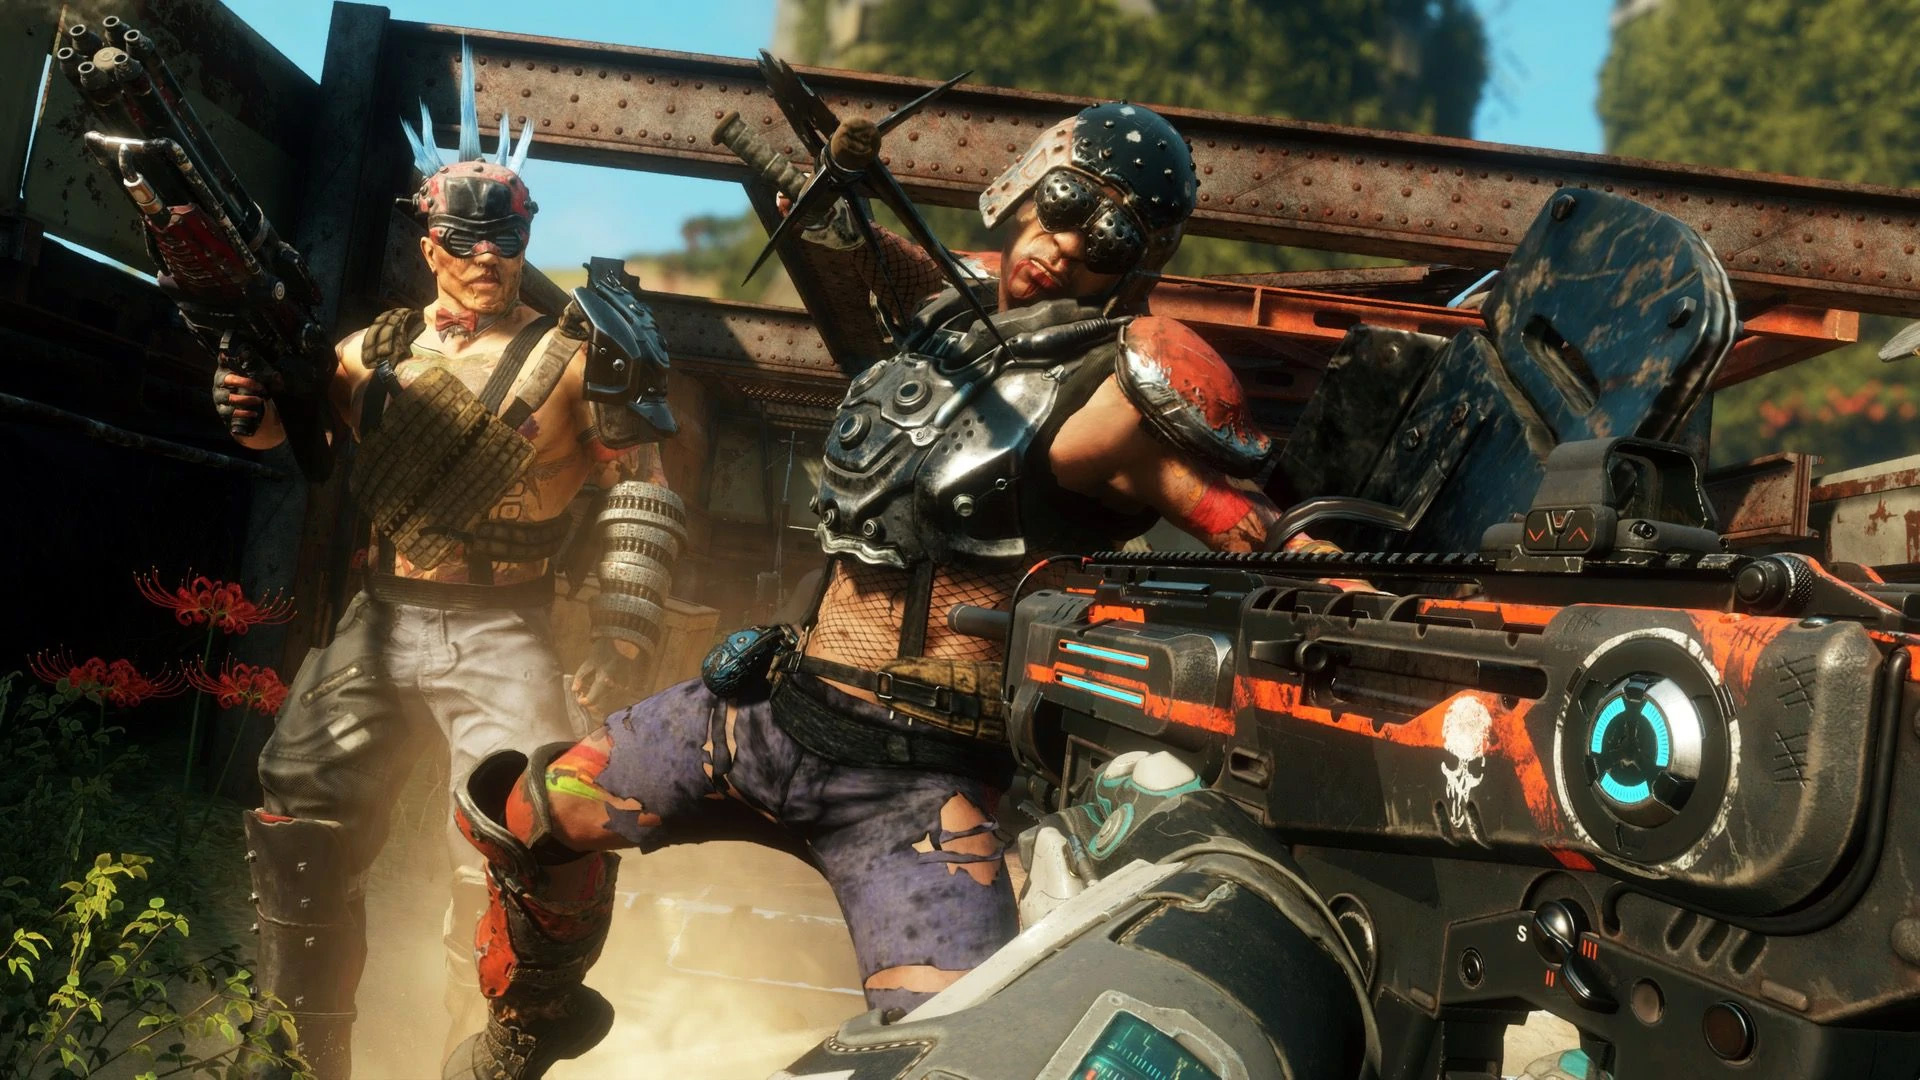 Rage 2 is ripe for a revisit now that it's free on the Epic Store screenshot